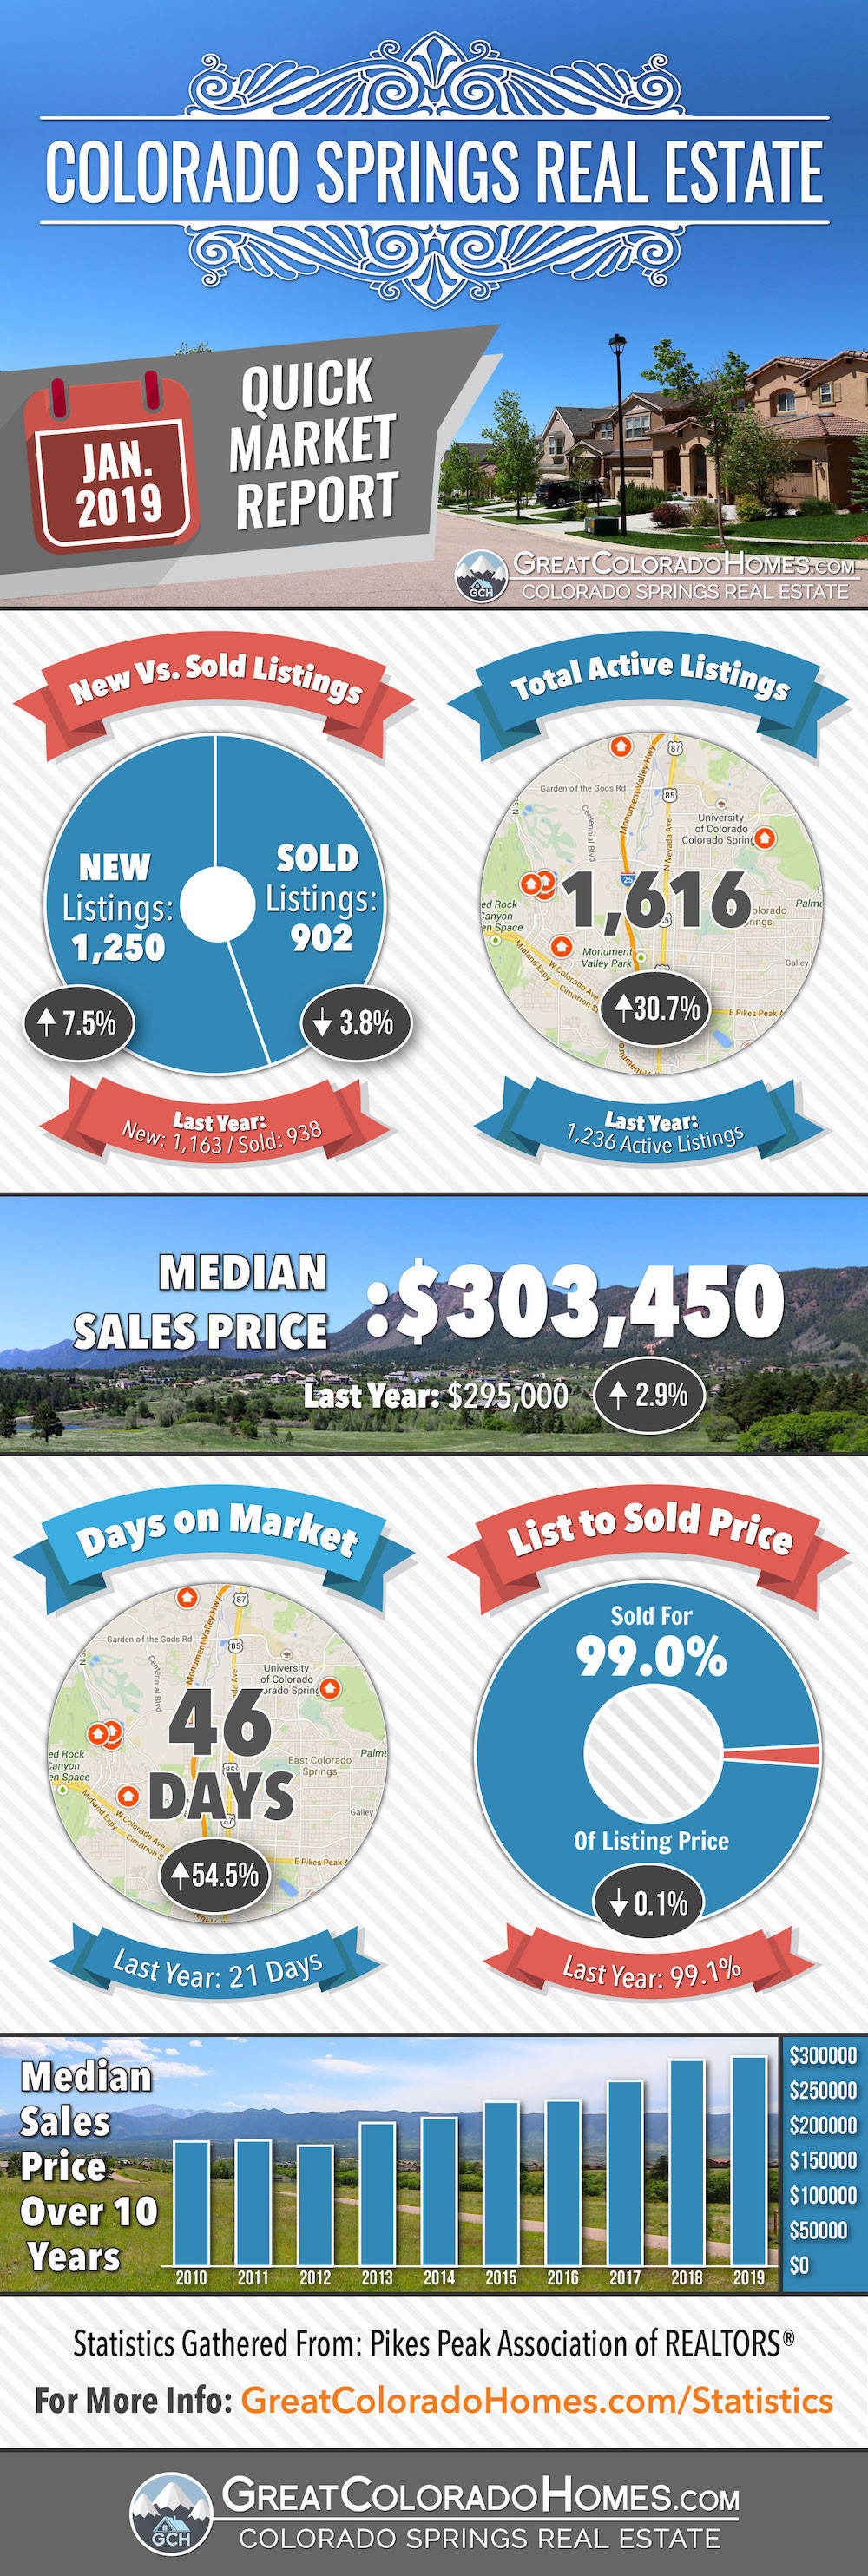 January 2019 Colorado Springs Real Estate Market Statistics Infographic